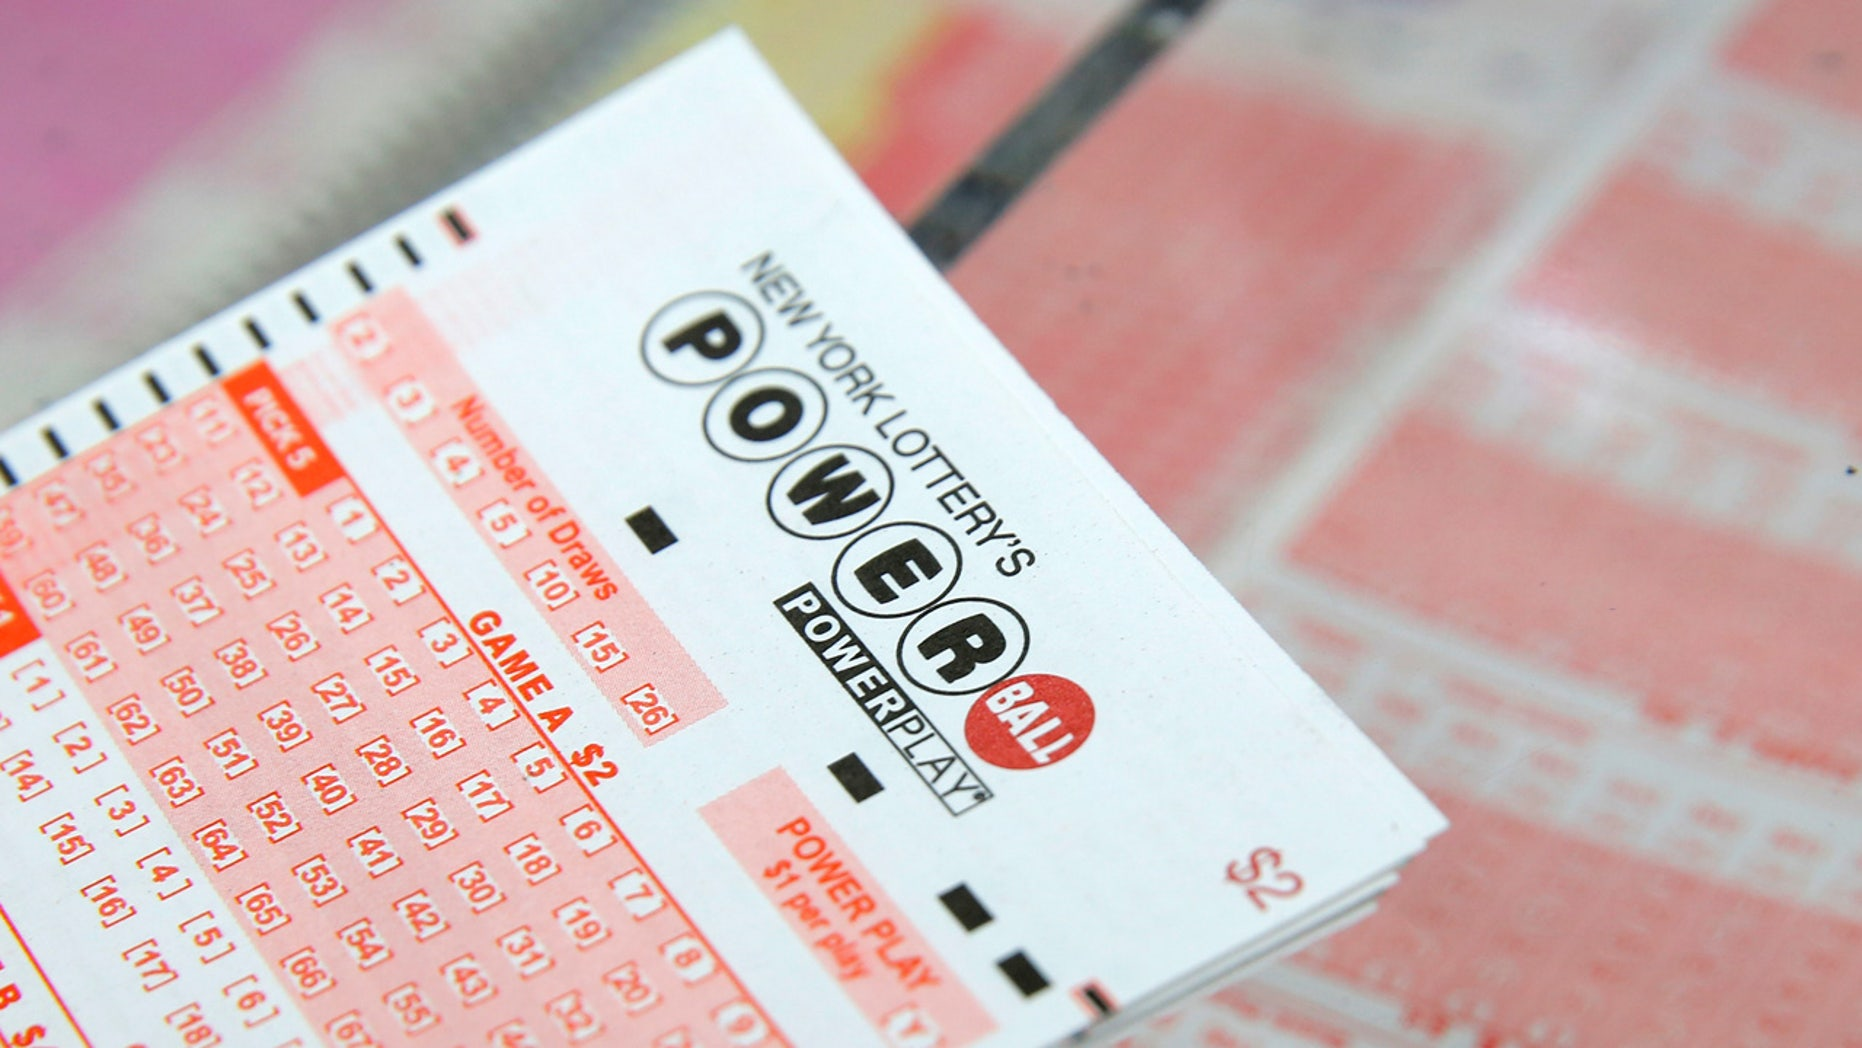 No winning Powerball tickets were sold in Wednesday's drawing.